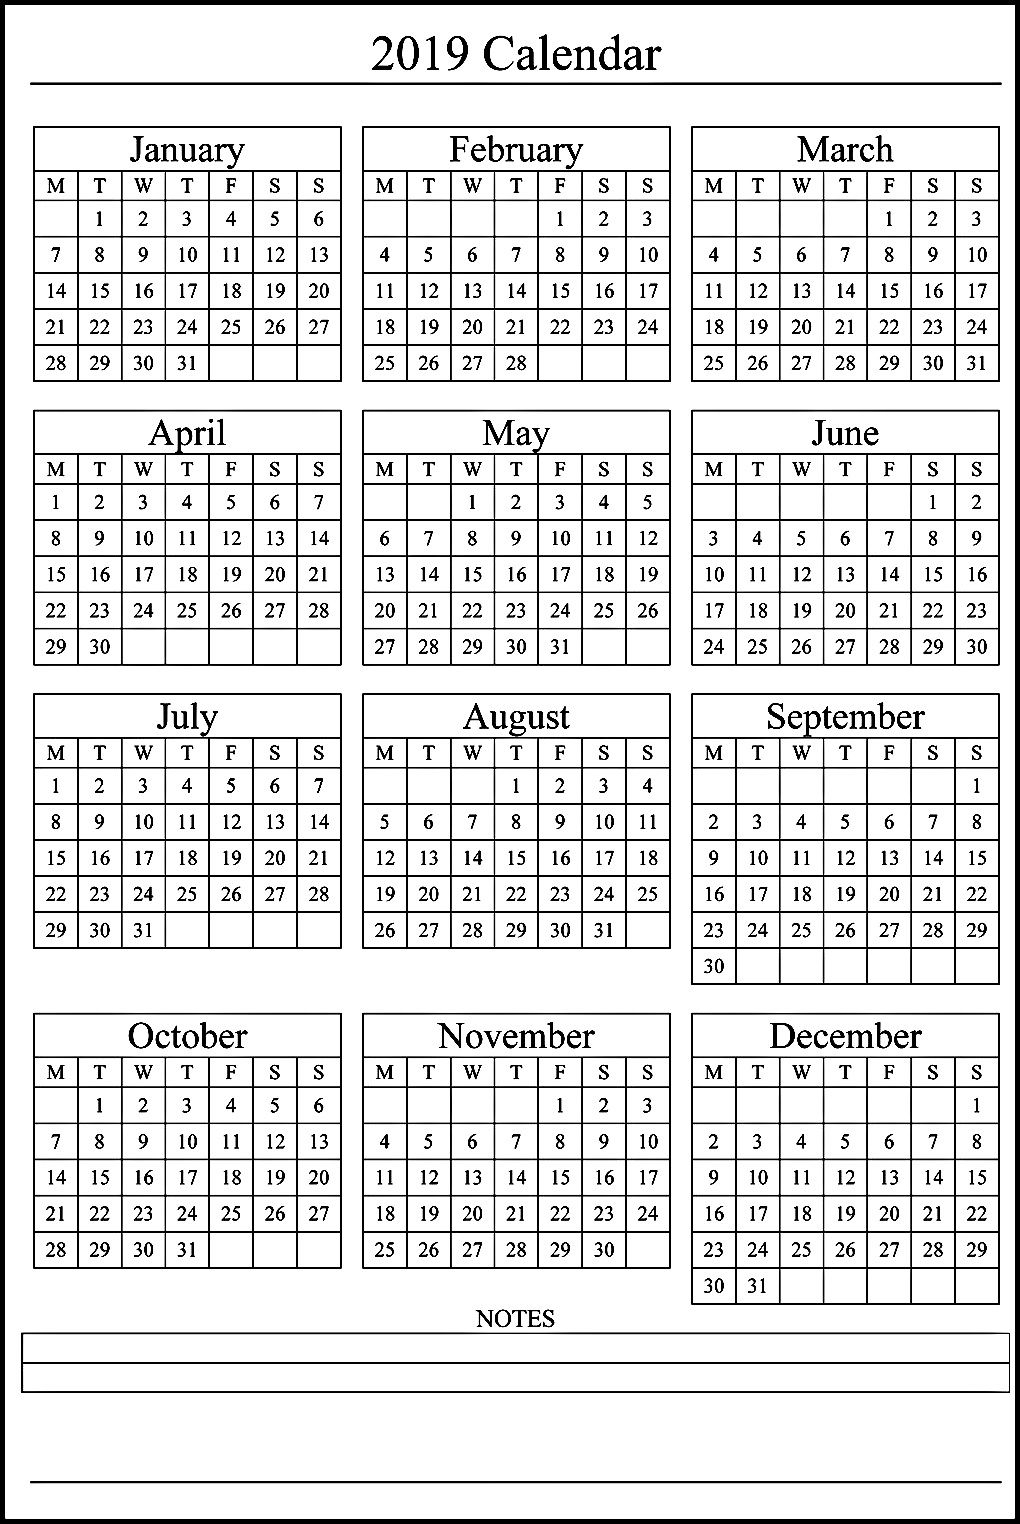 12 Month Calendar On One Page #2019Calendar within Printable 12 Month Calendar On One Page